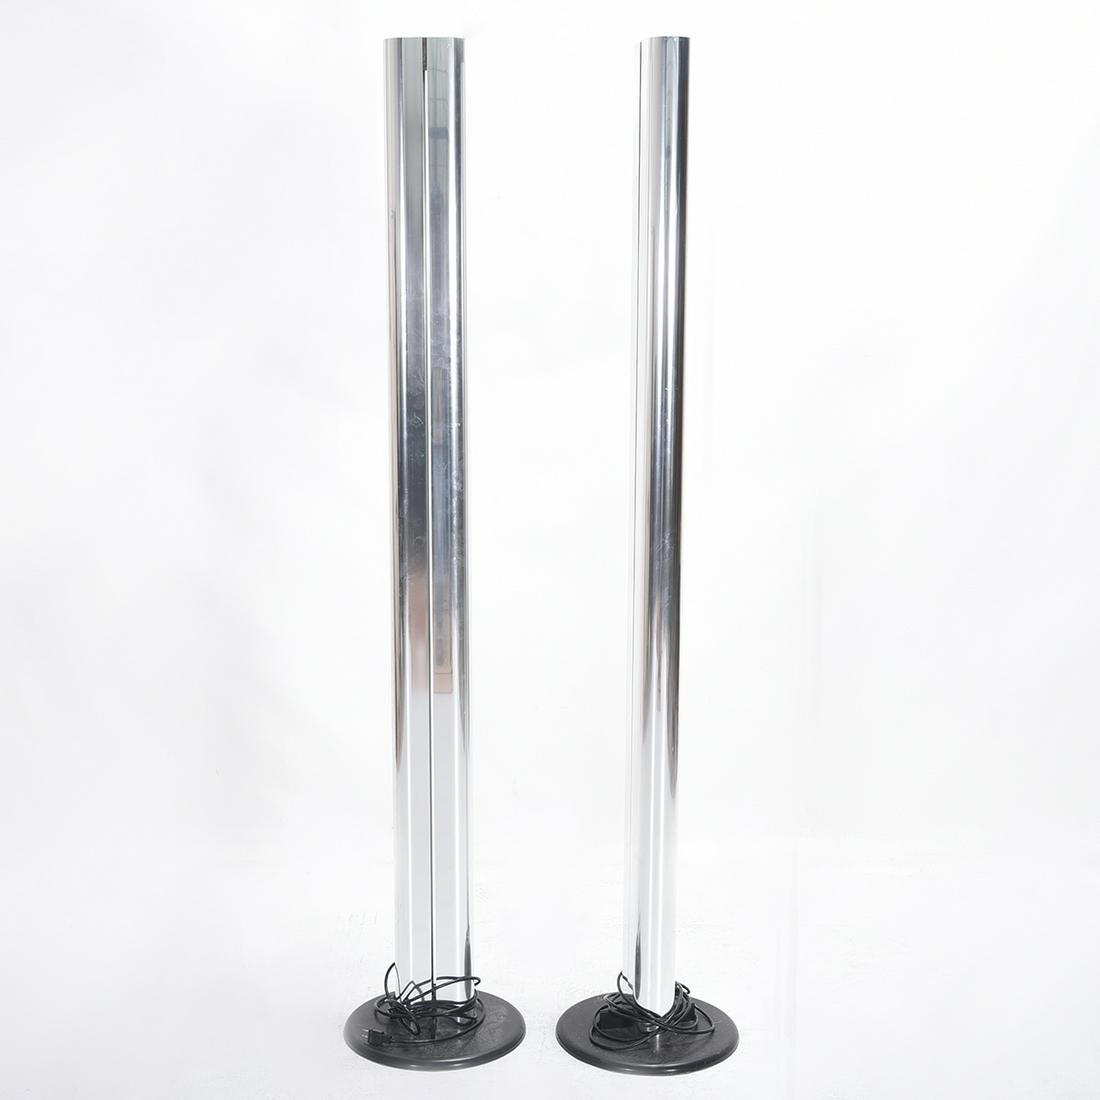 Pair of Modernist Polished Chrome Floor Lamps.